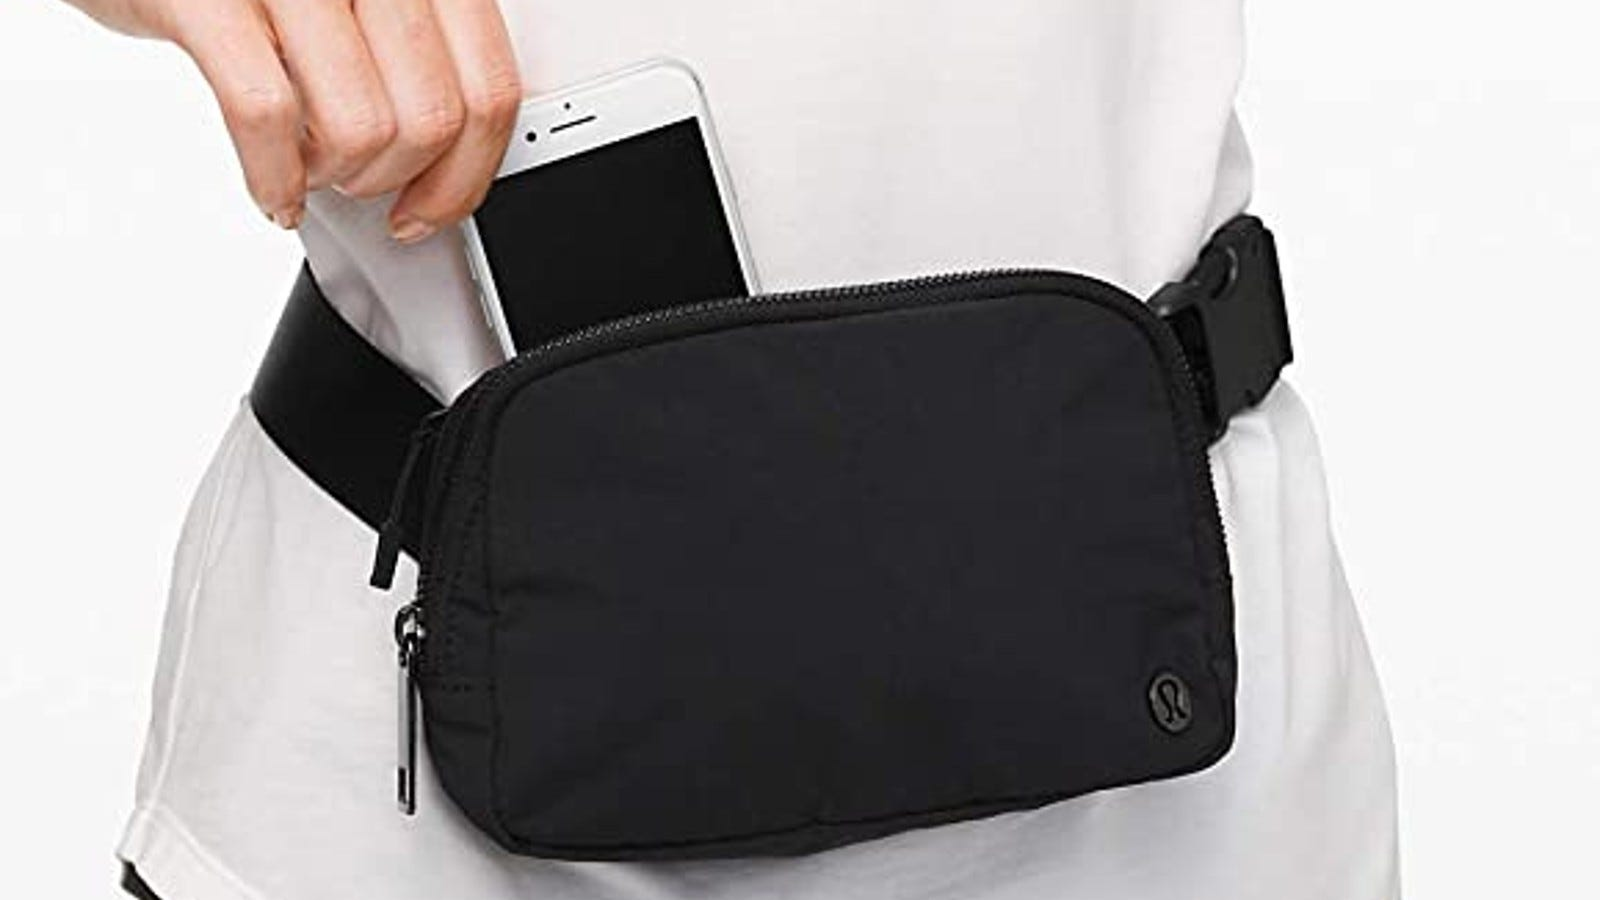 black fanny pack on woman's waist while she pulls her iPhone out